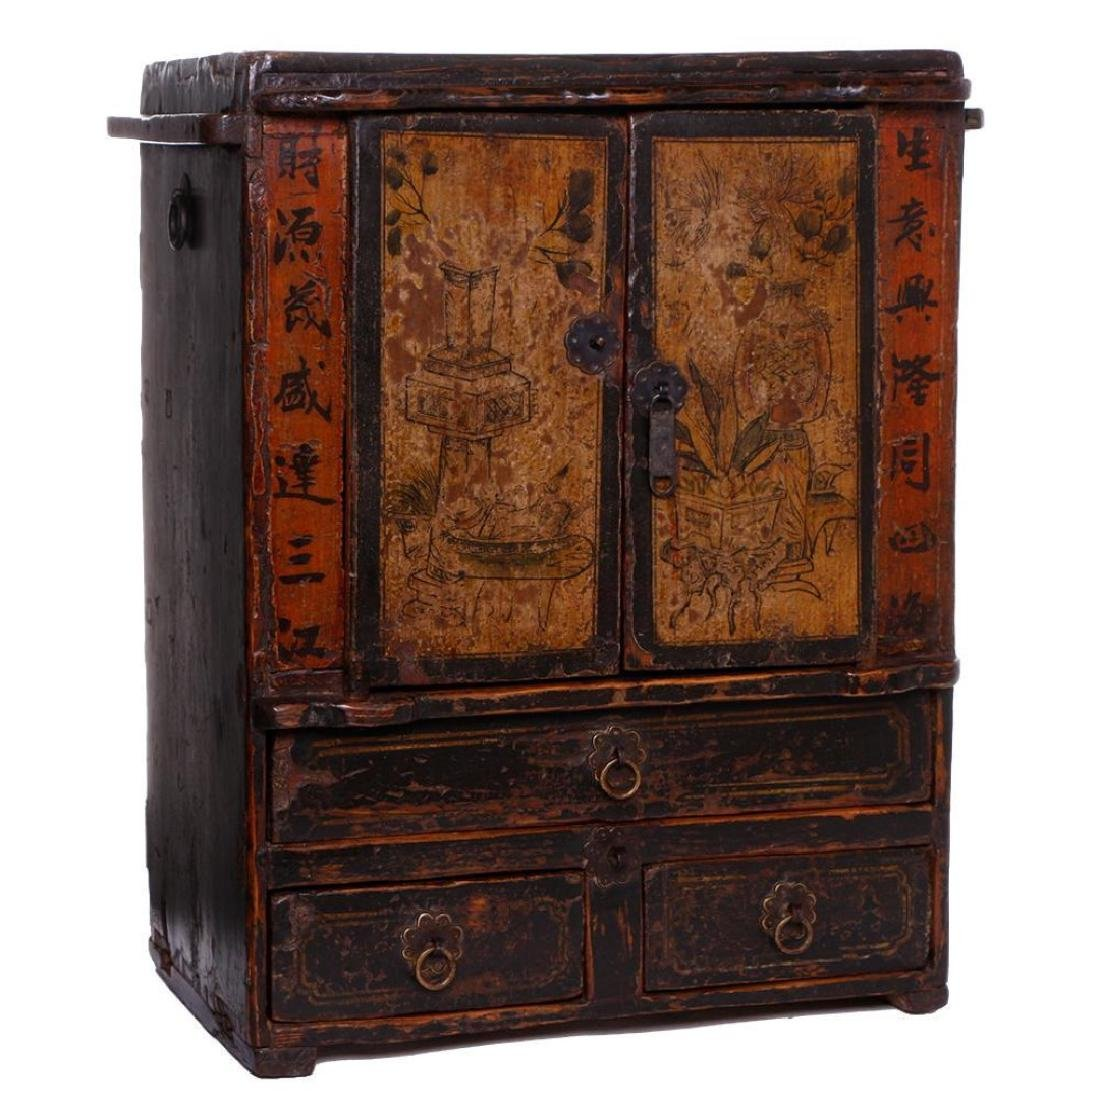 CHINESE VENDOR'S CHEST